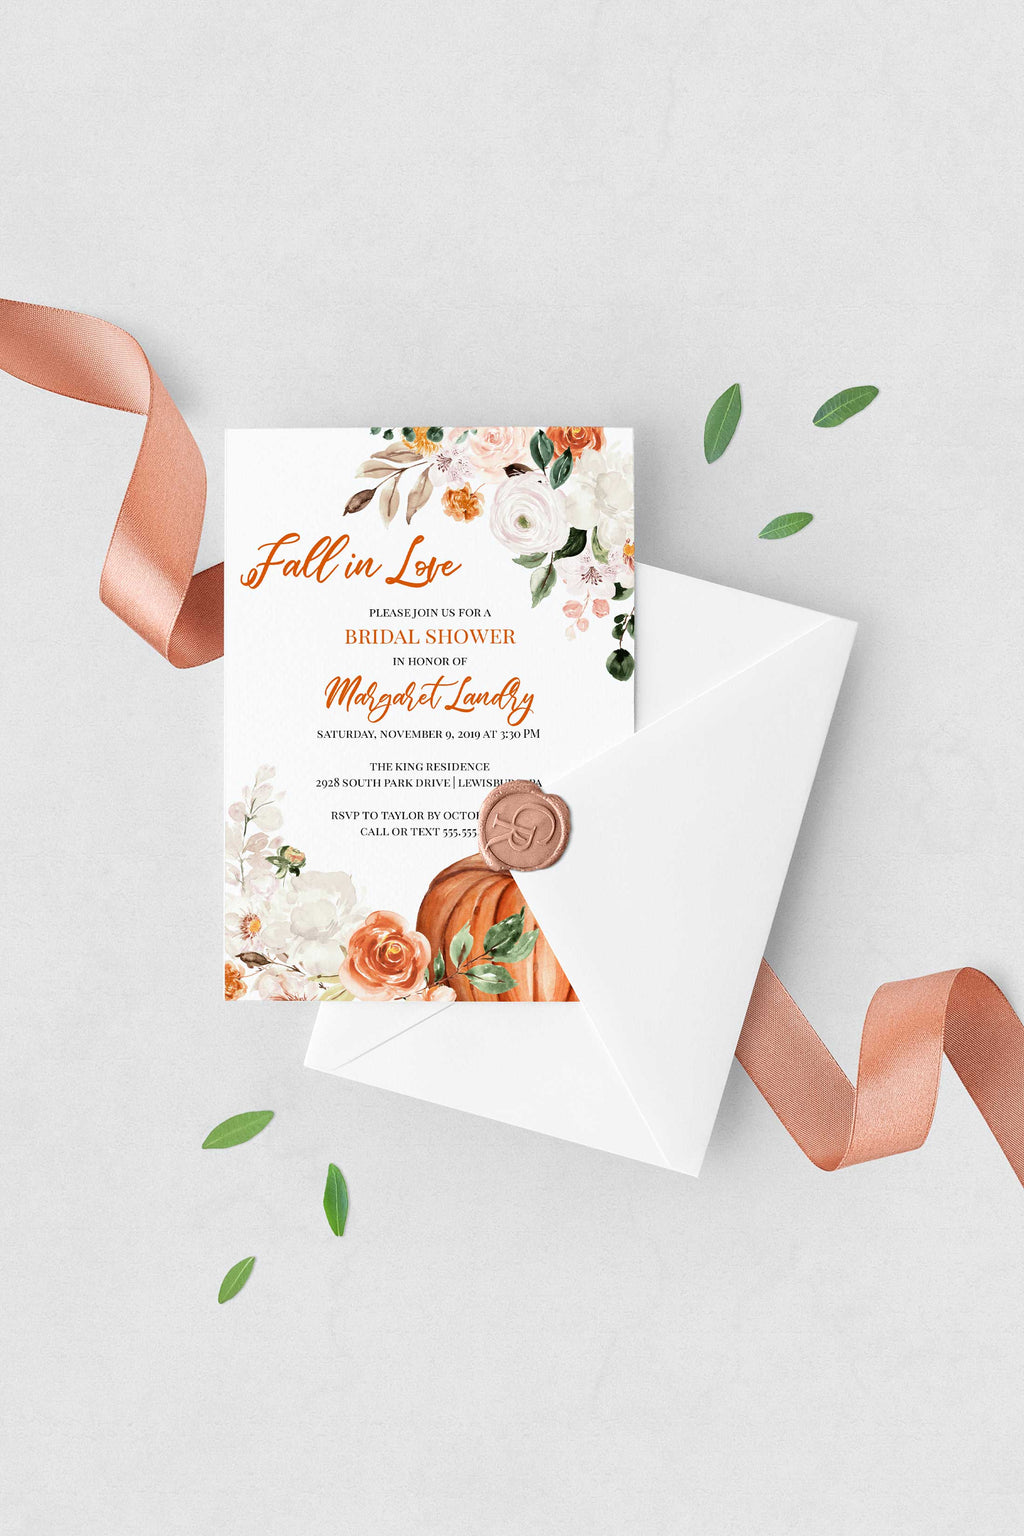 Botanica Fall Pumpkin Bridal Shower Invitation - Fall in Love